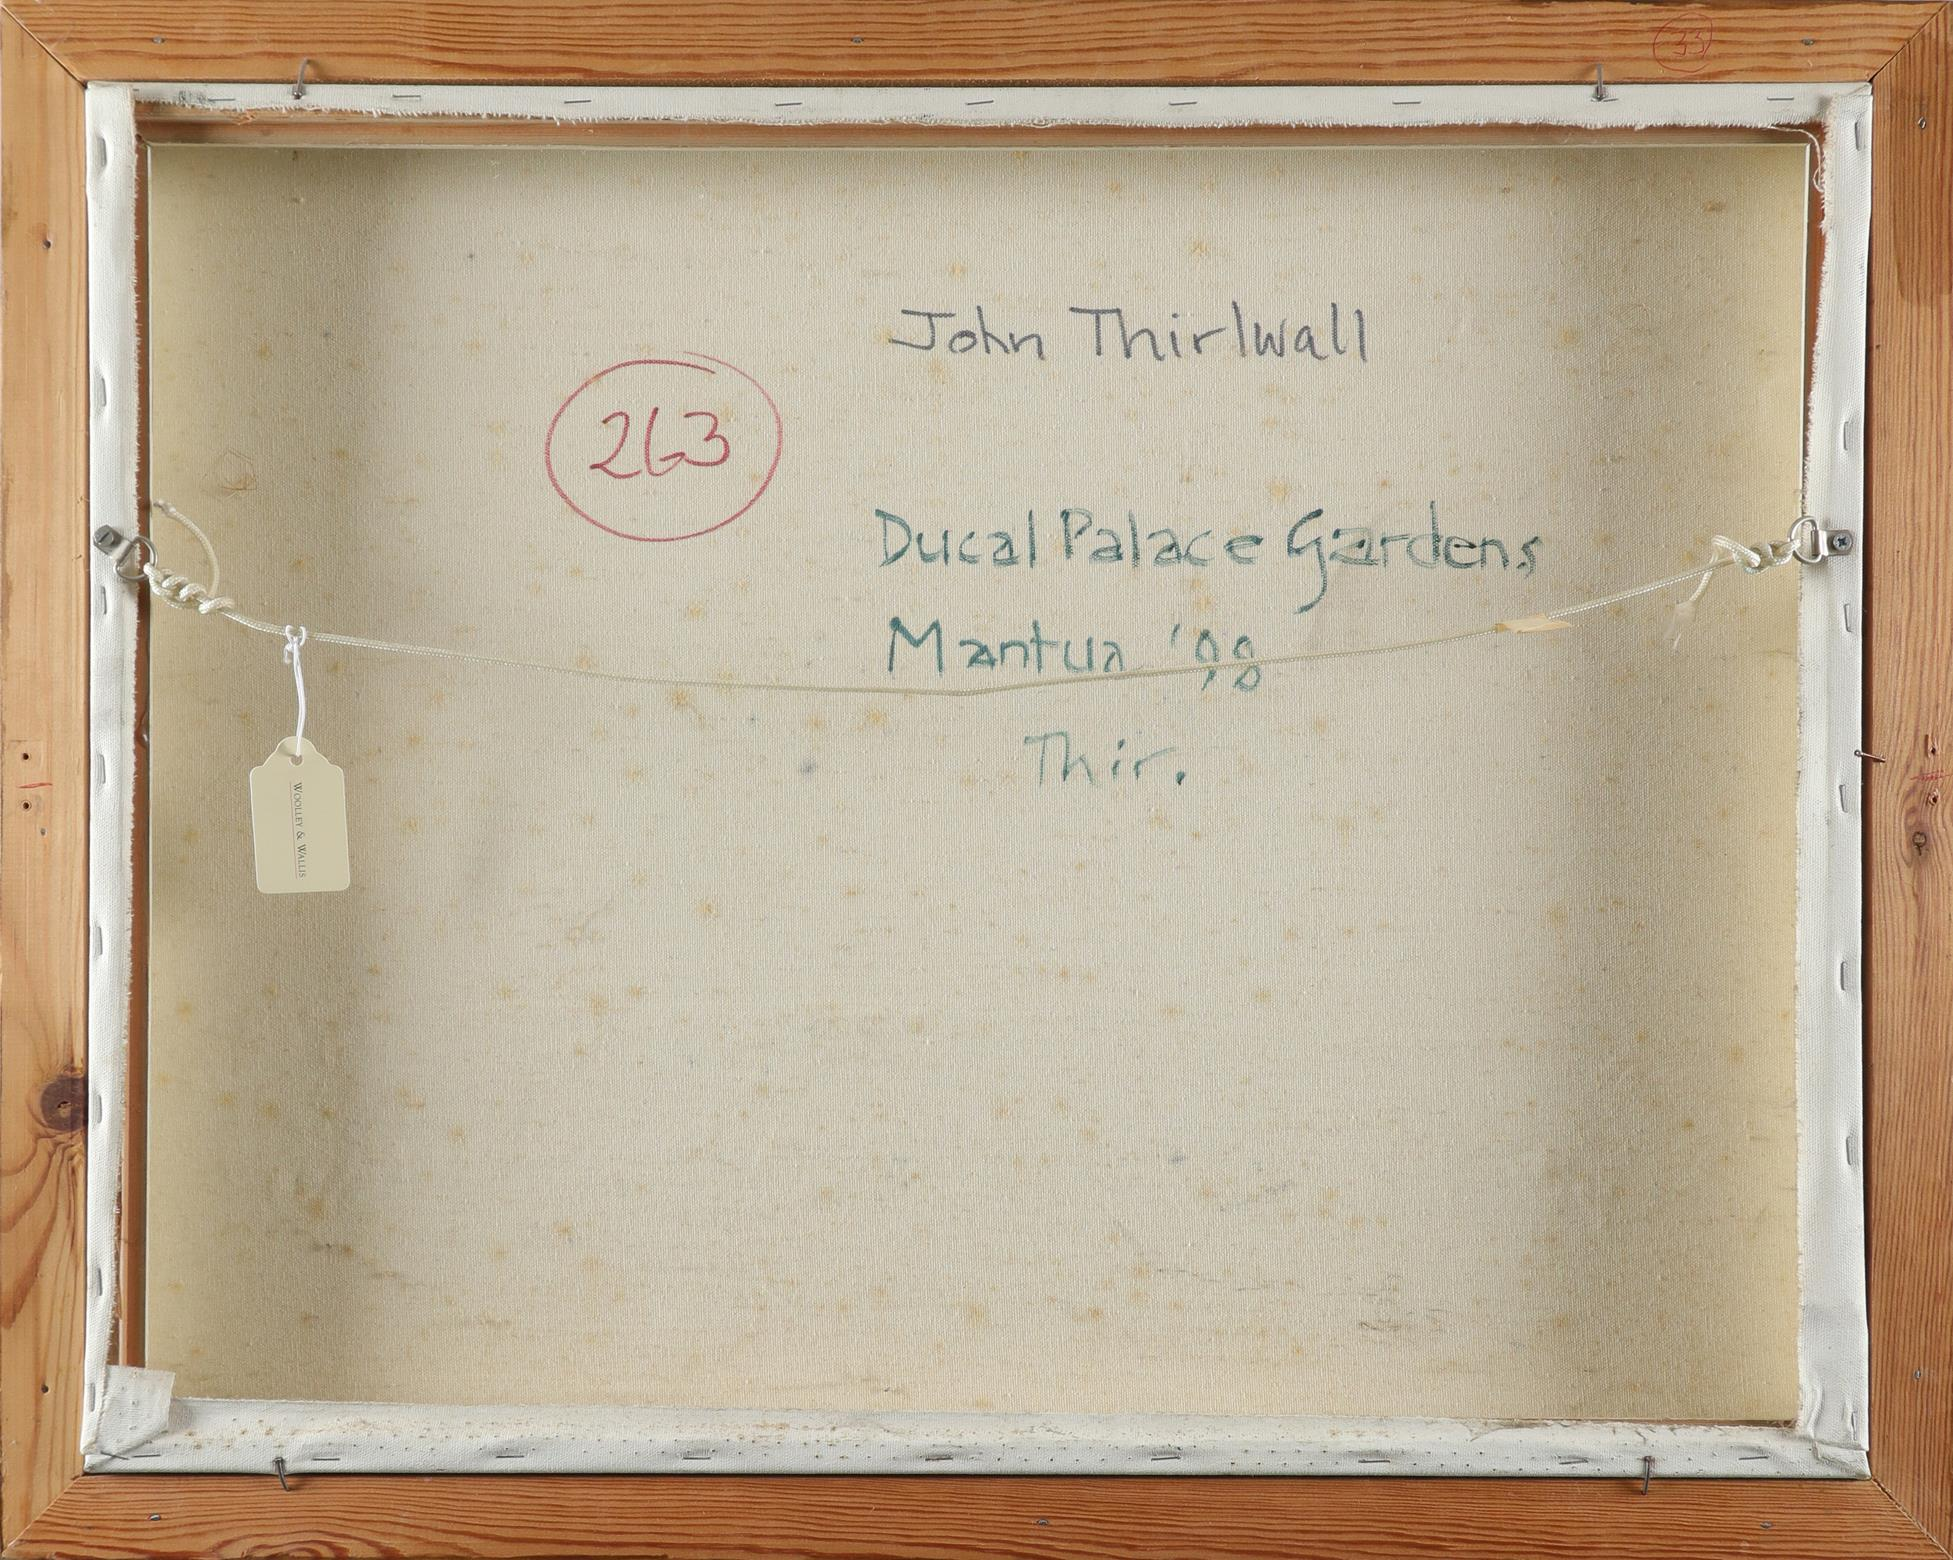 ‡John Thirlwall (b.1943) Ducal Palace Gardens, Mantua Signed and dated Thir '98 (lower left), and - Image 3 of 3